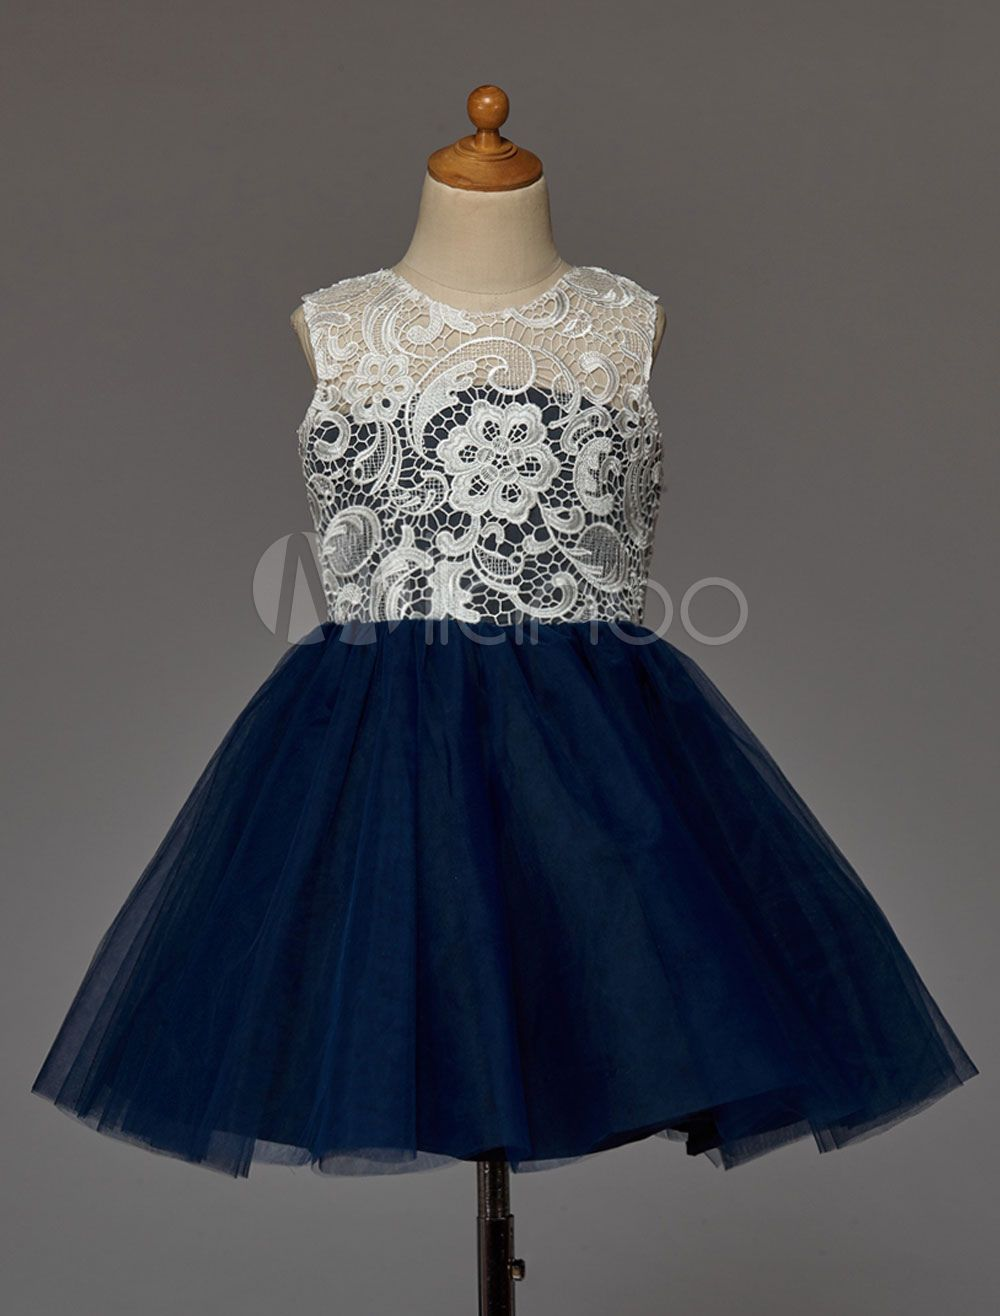 8c2f87bcc4 Dark Navy Flower Girl Dress With Buttons Lace Tulle Toddler Flower Girl  Dresses